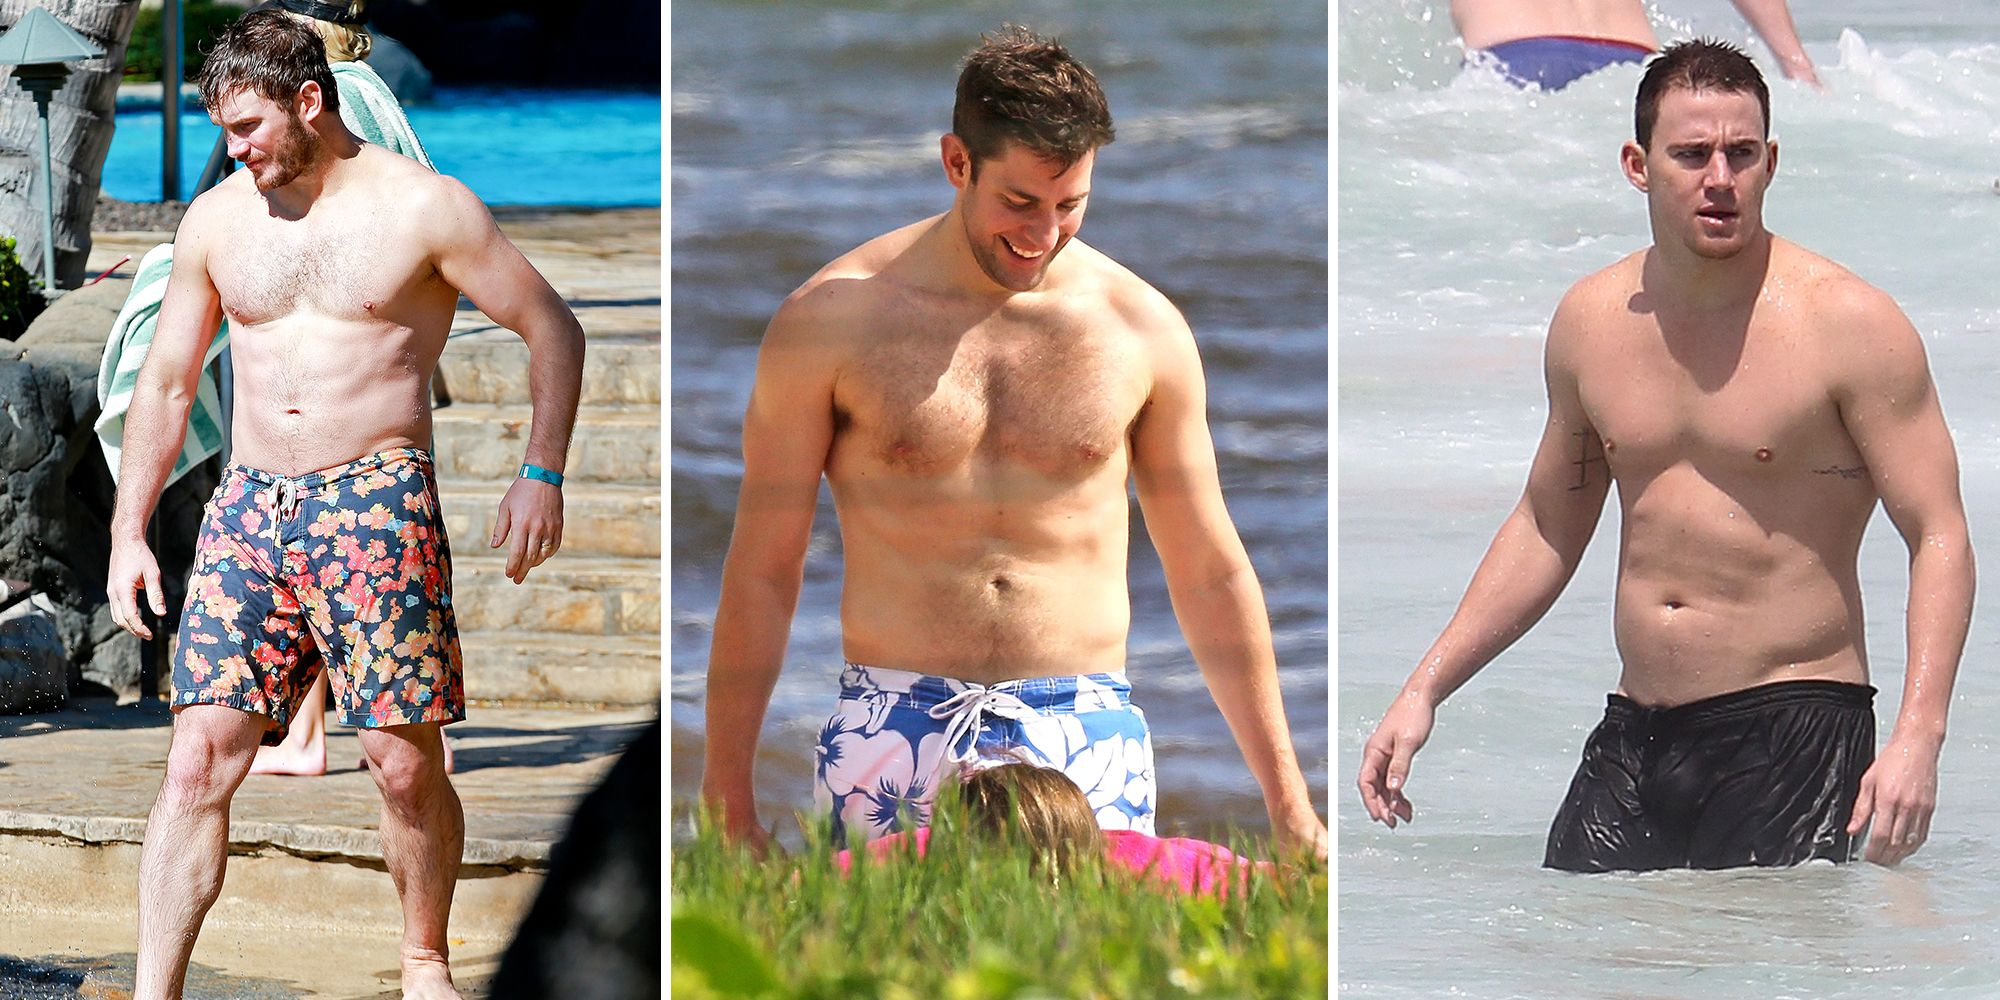 Dad bods are trending online and weve collected 40 photos